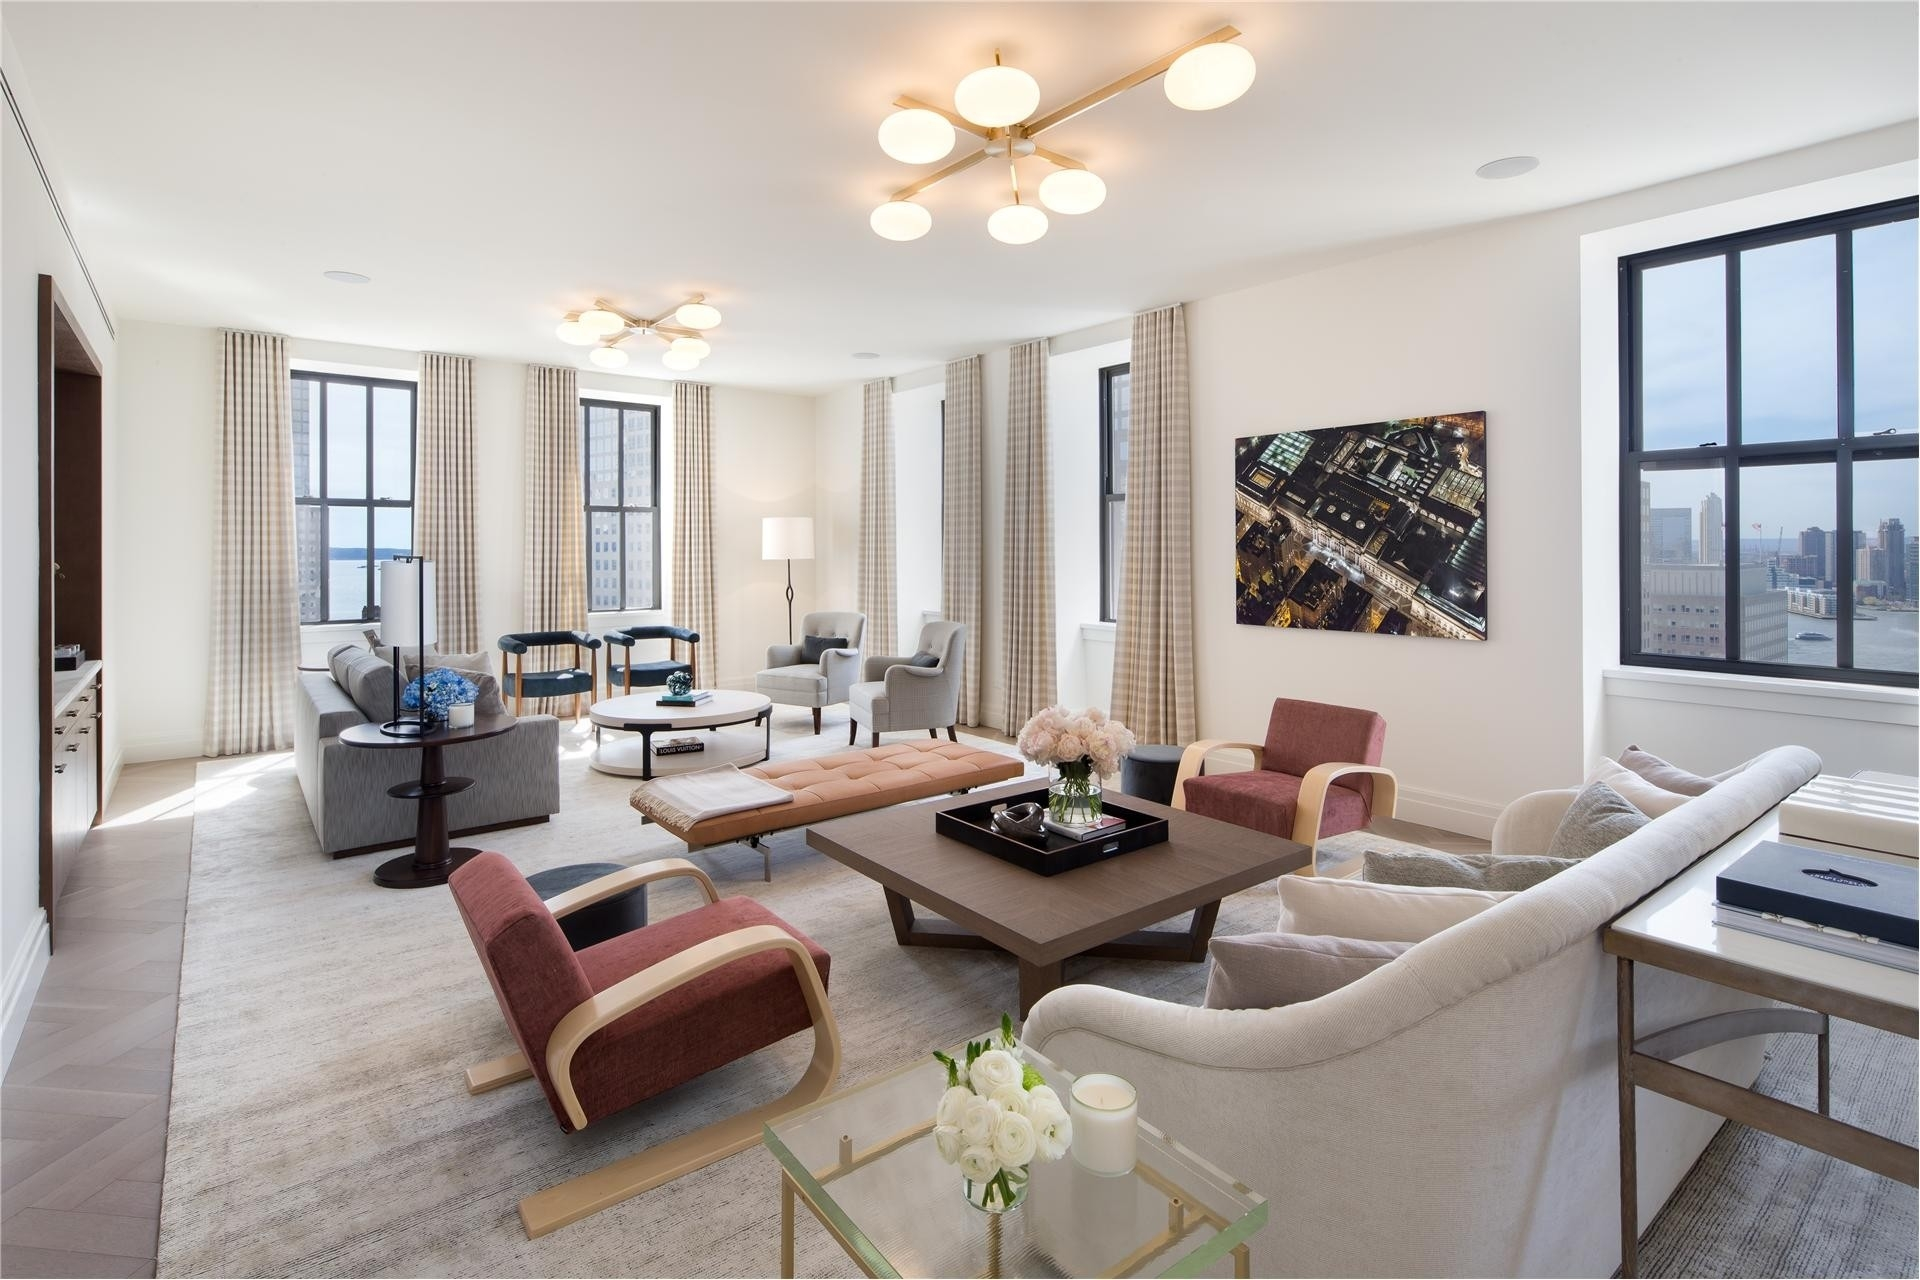 Condominium at One Hundred Barclay Tribeca, 100 Barclay St, 25D Financial District (Wall Street), New York